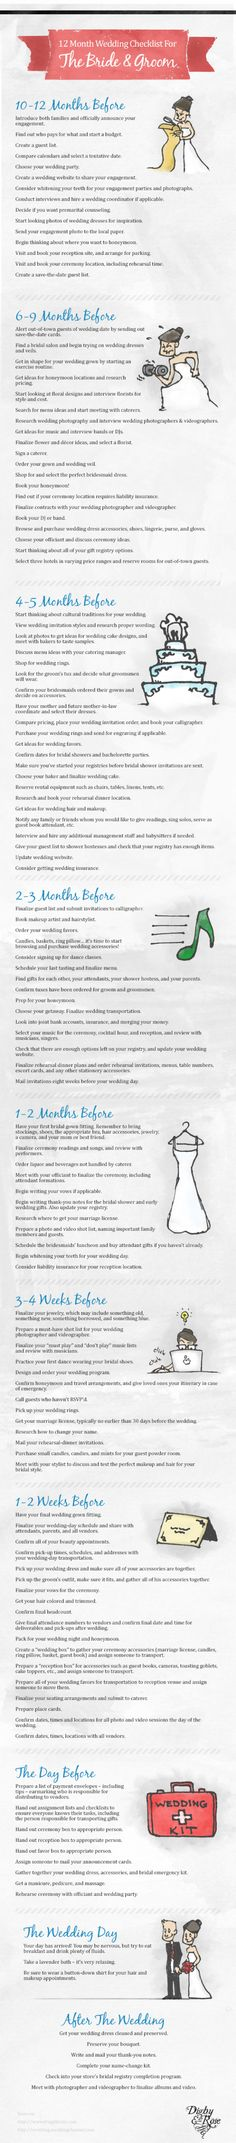 Complete Wedding Planning Guide and Checklist